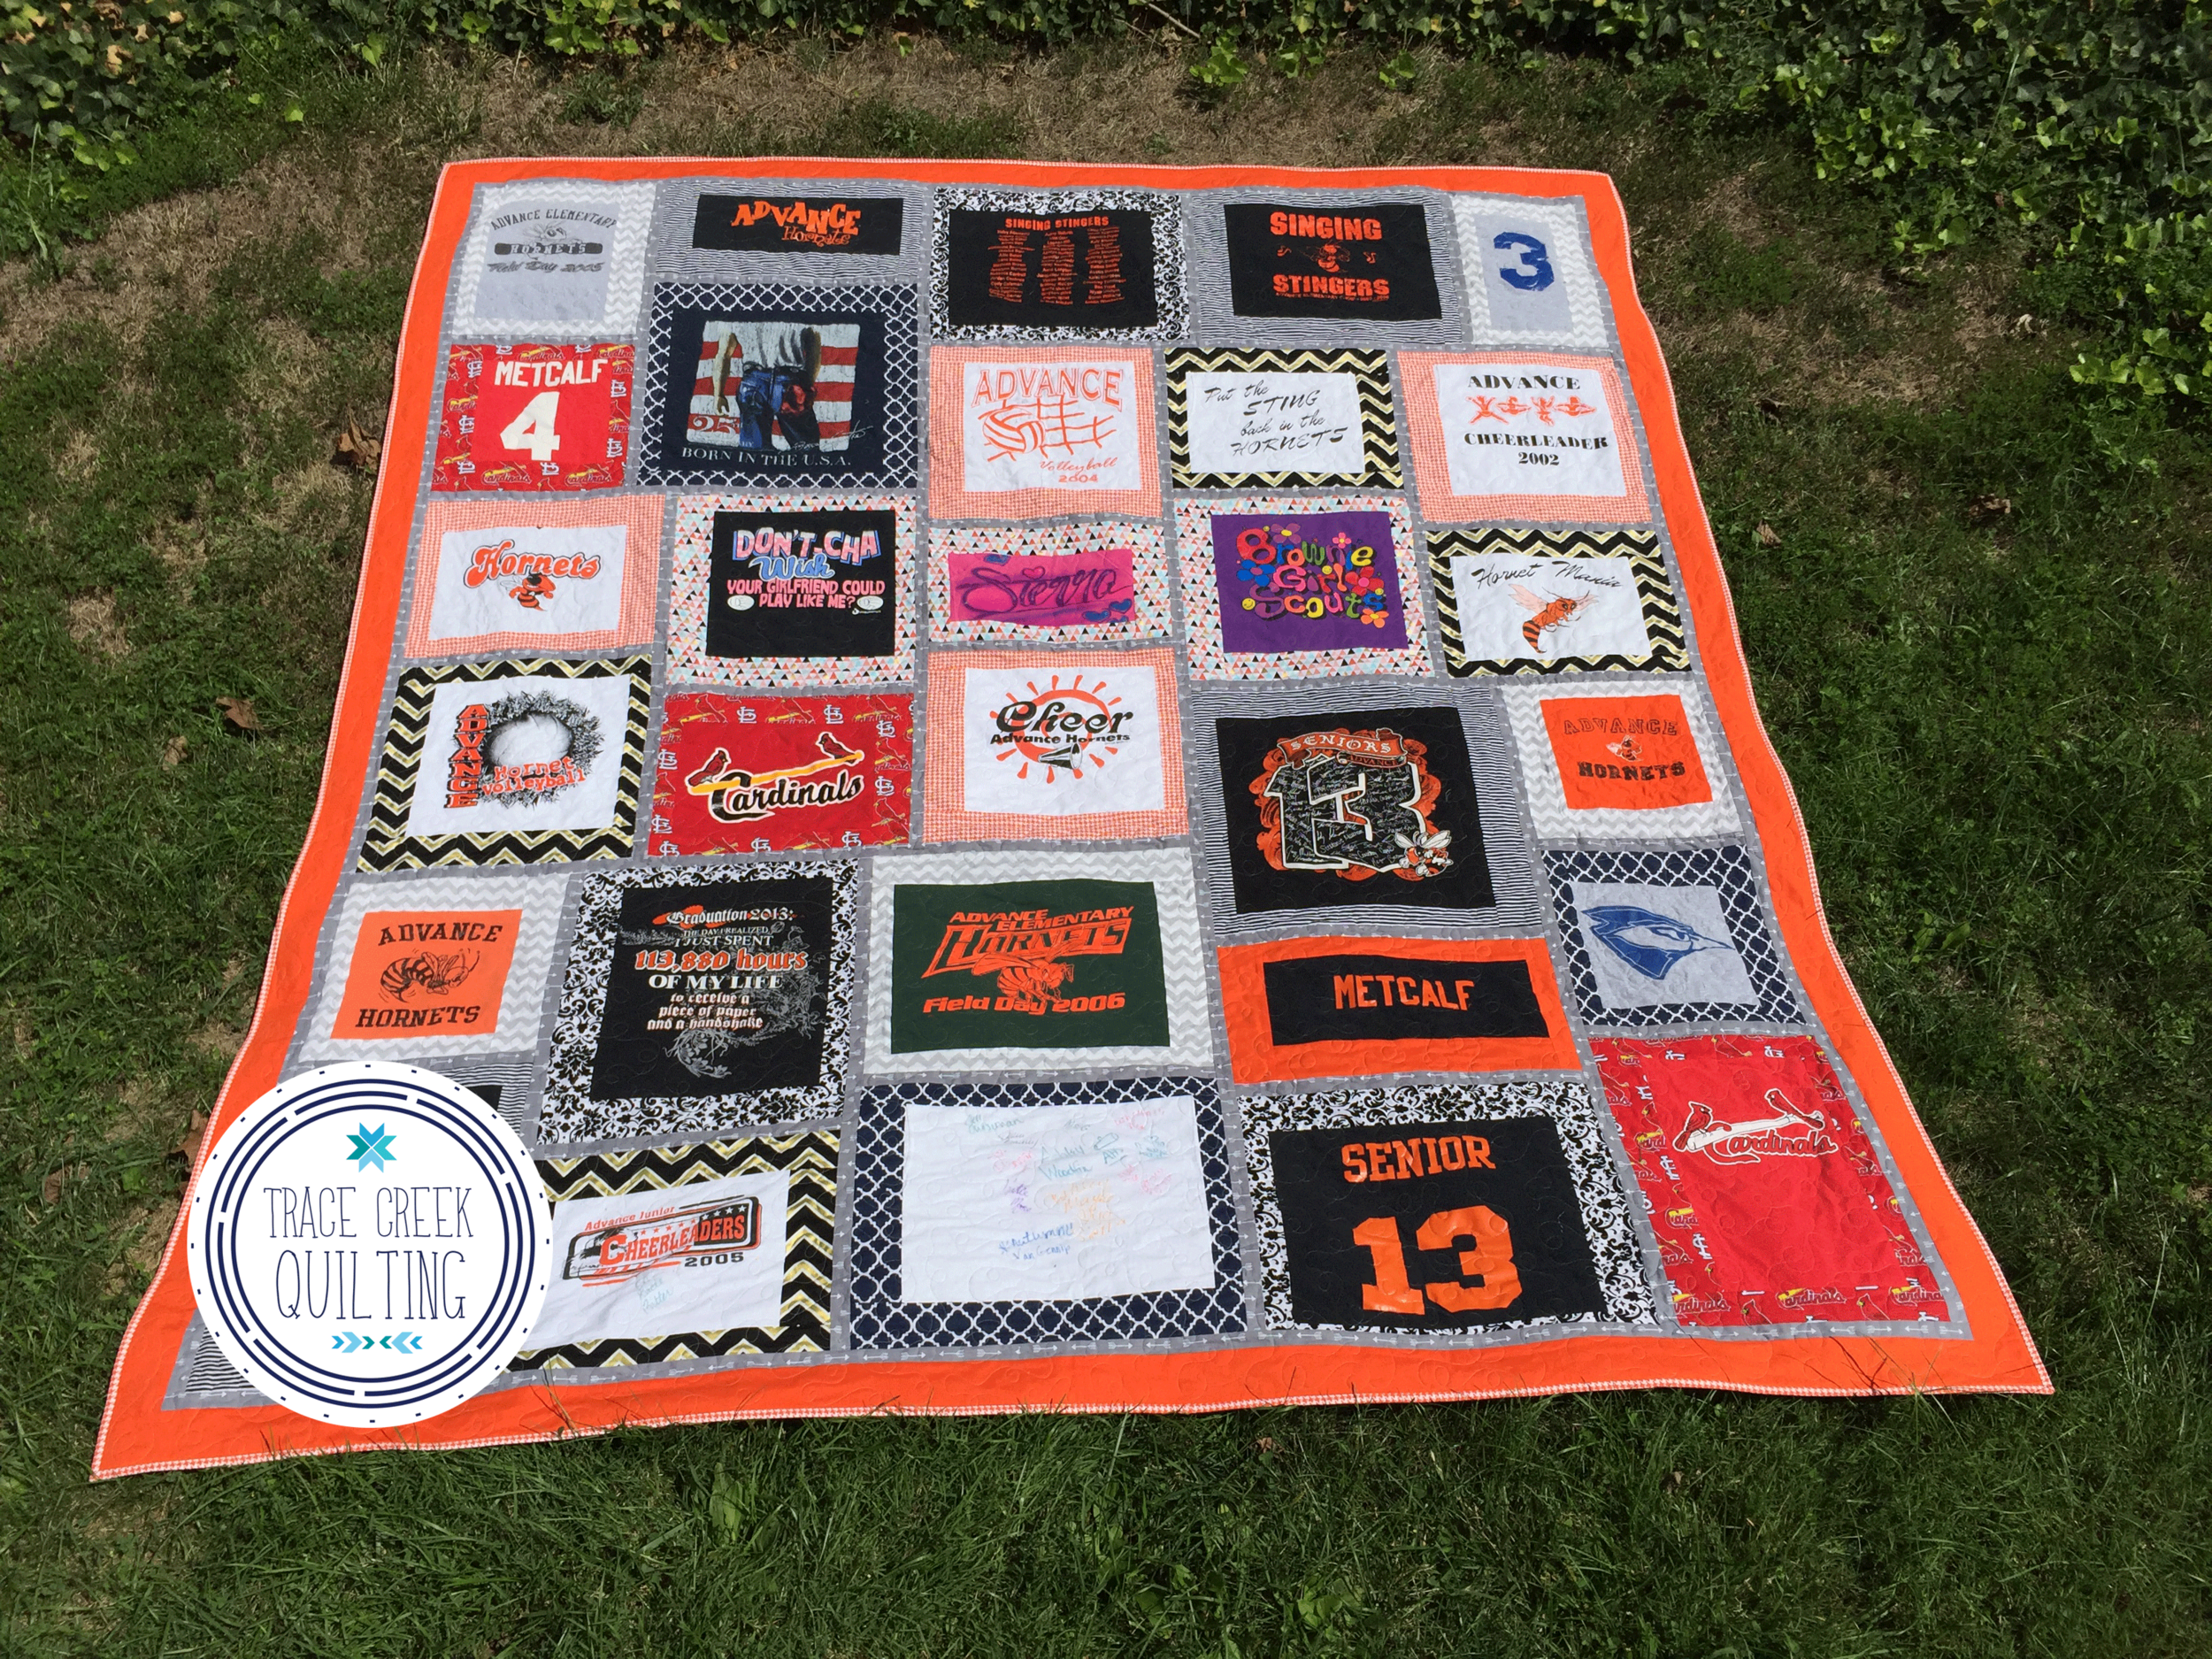 TShirt-Quilt-Trace-Creek-Quilting-056.png